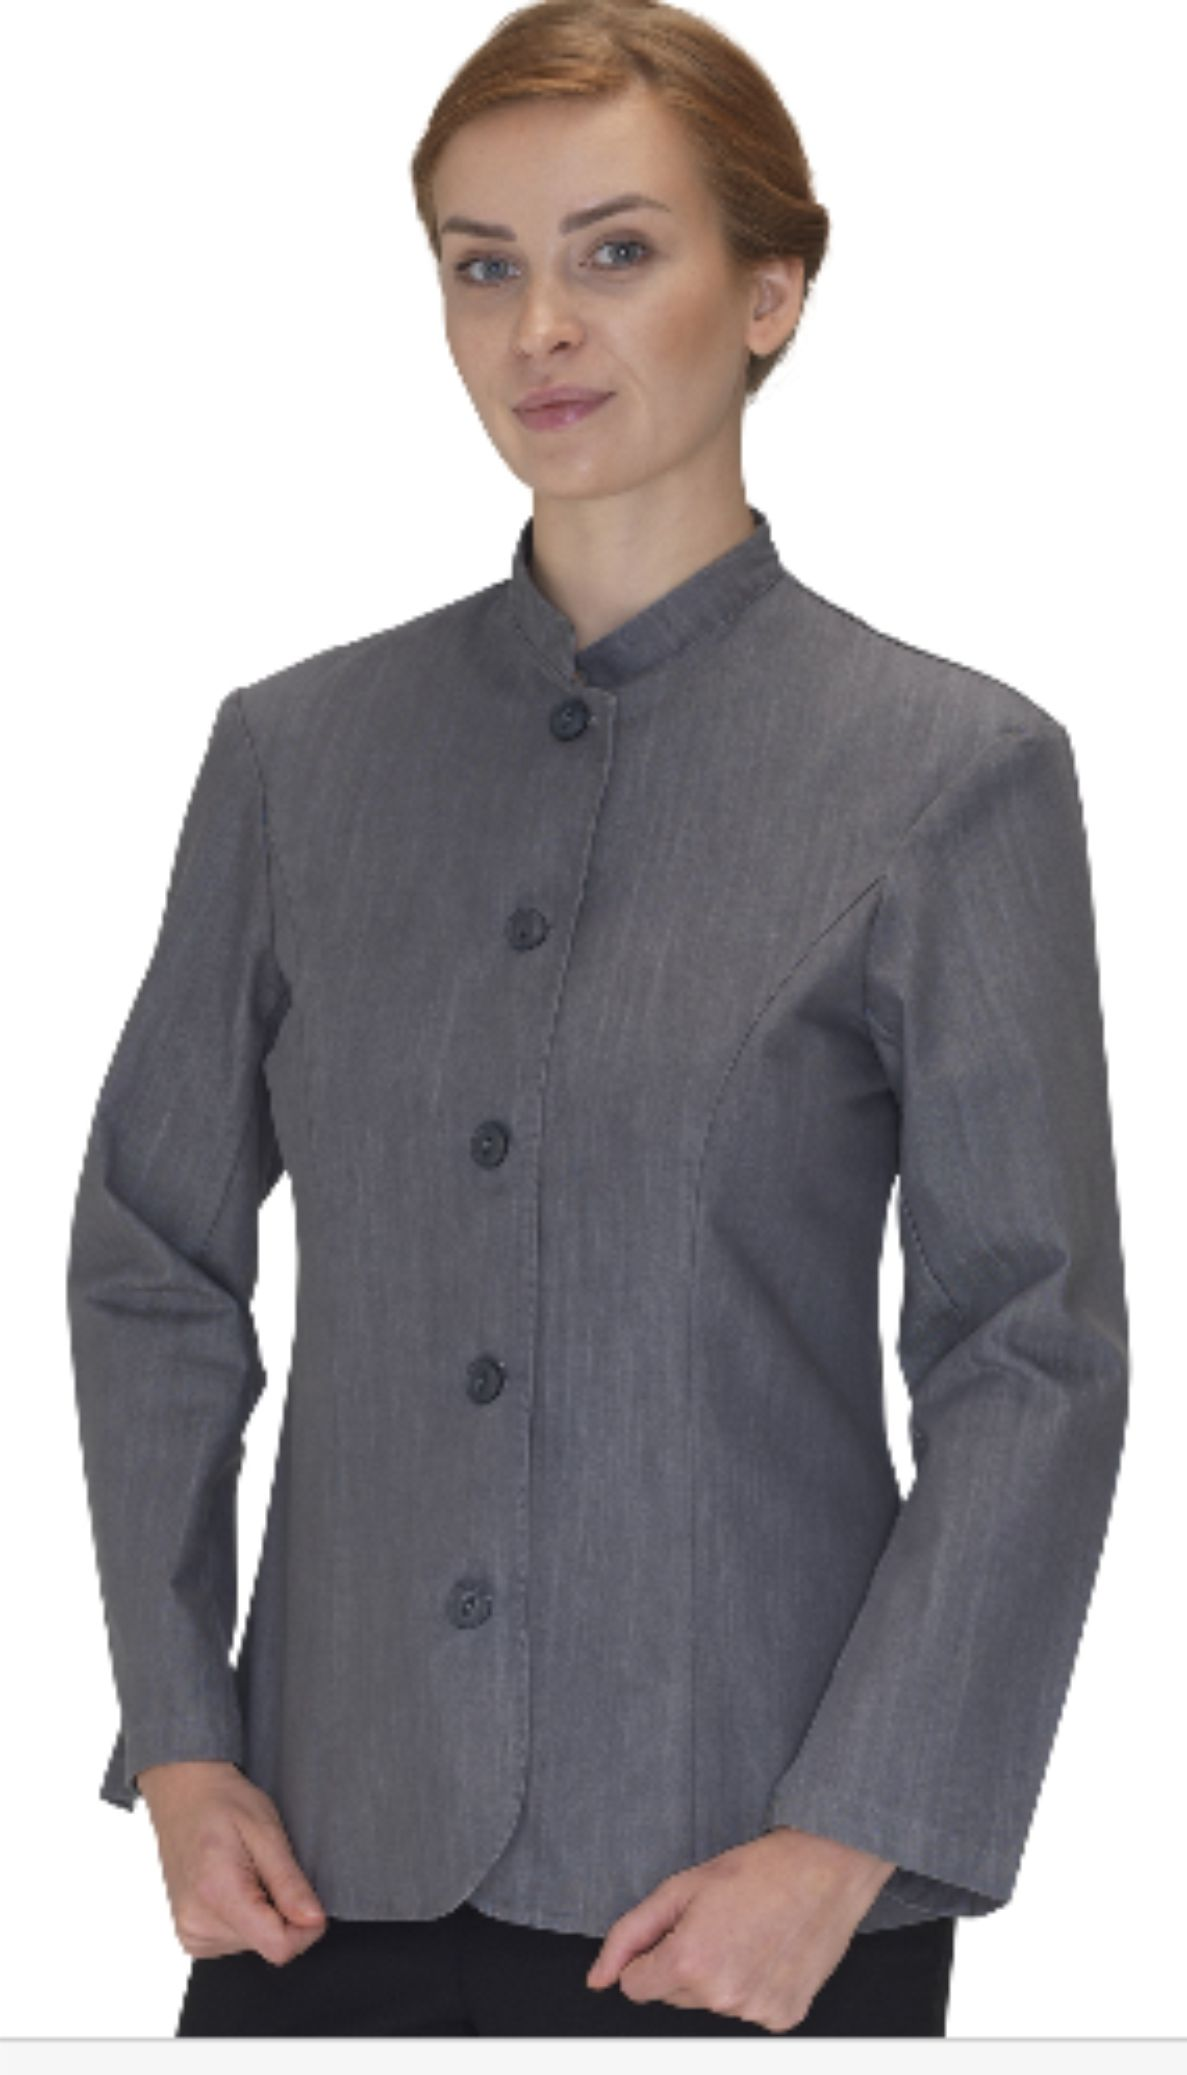 DD23M Men's Nehru Jacket